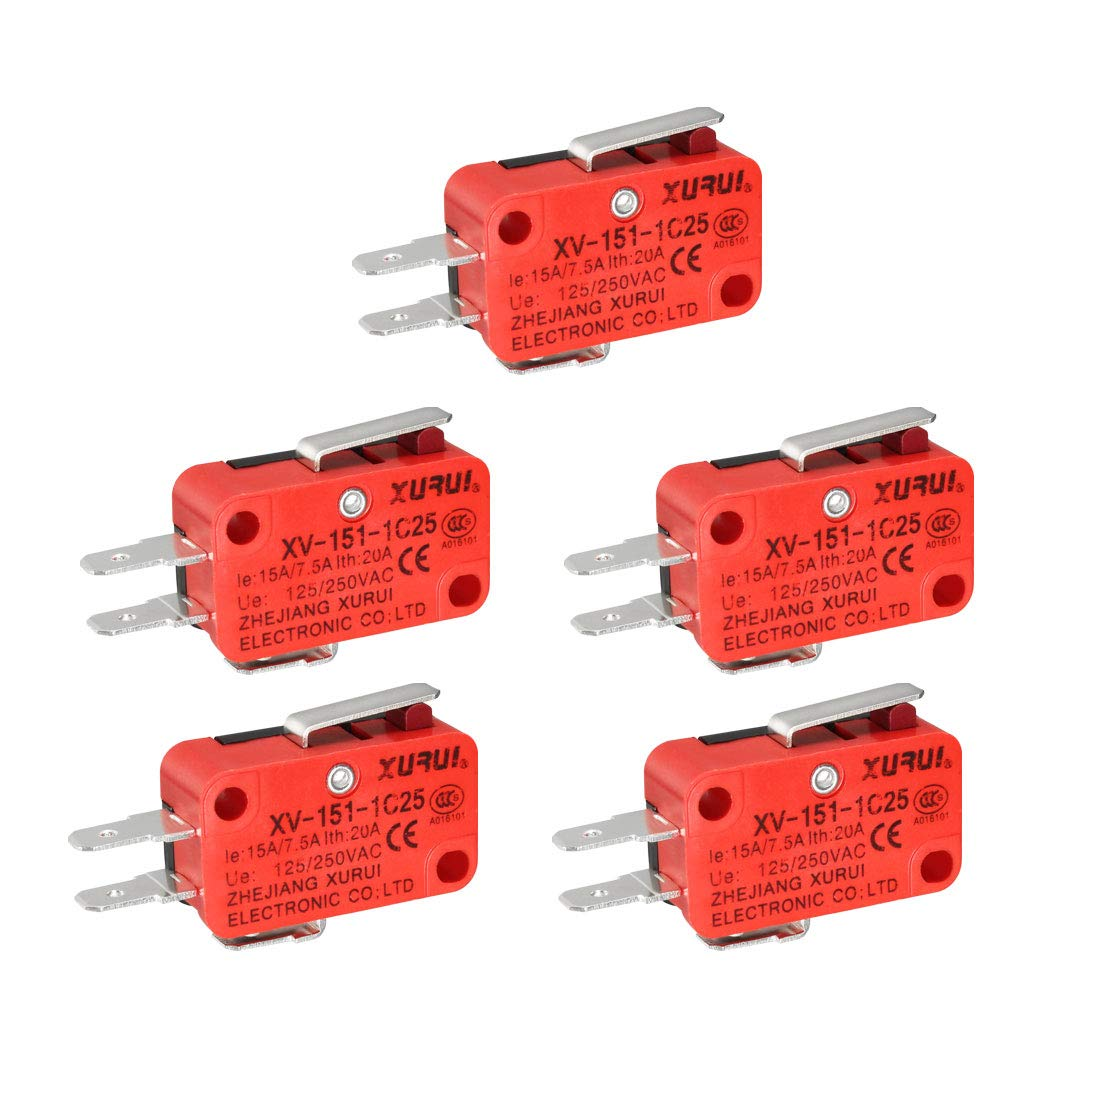 uxcell XURUI Authorized 5Pcs 16A 250V AC 3 Terminals SPDT NO+NC Snap Button Type Micro Switches